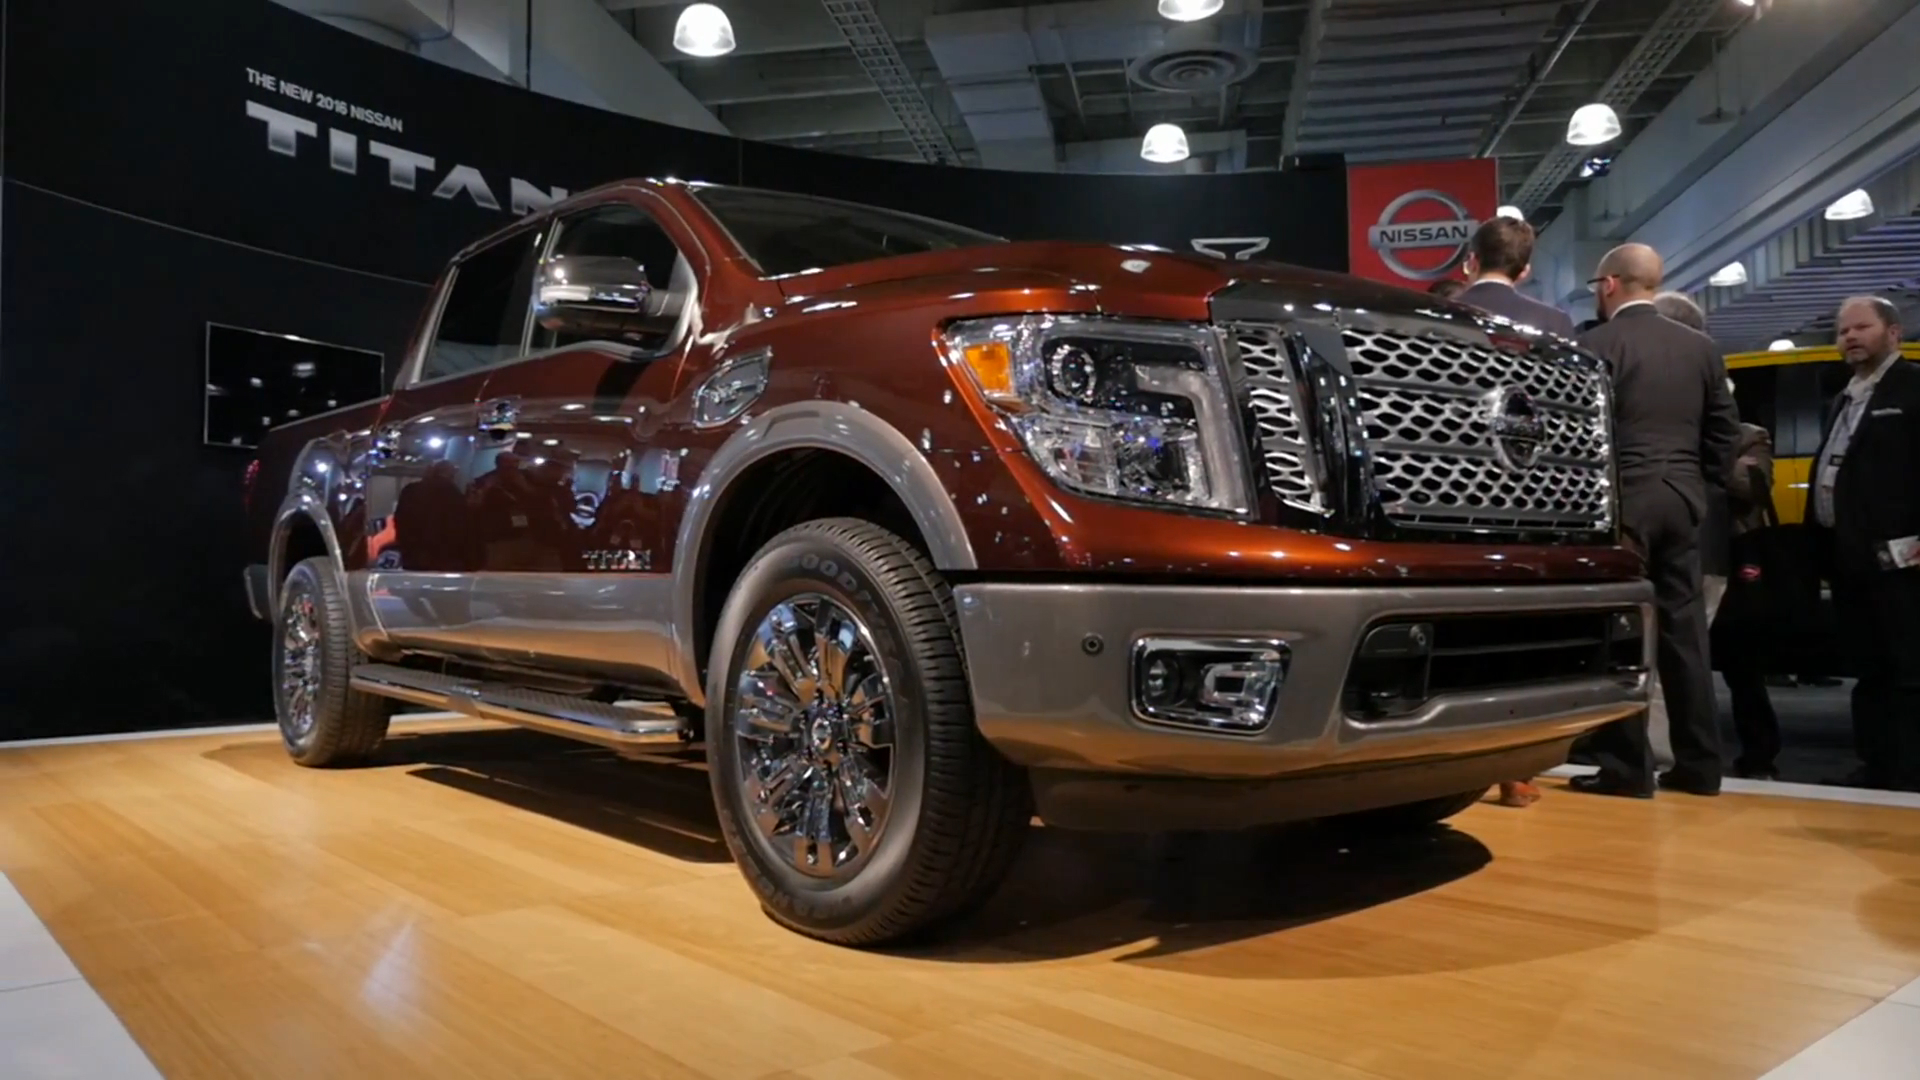 2016 nissan titan xd with gas fueled v8 starts at 36485 autoblog vanachro Image collections